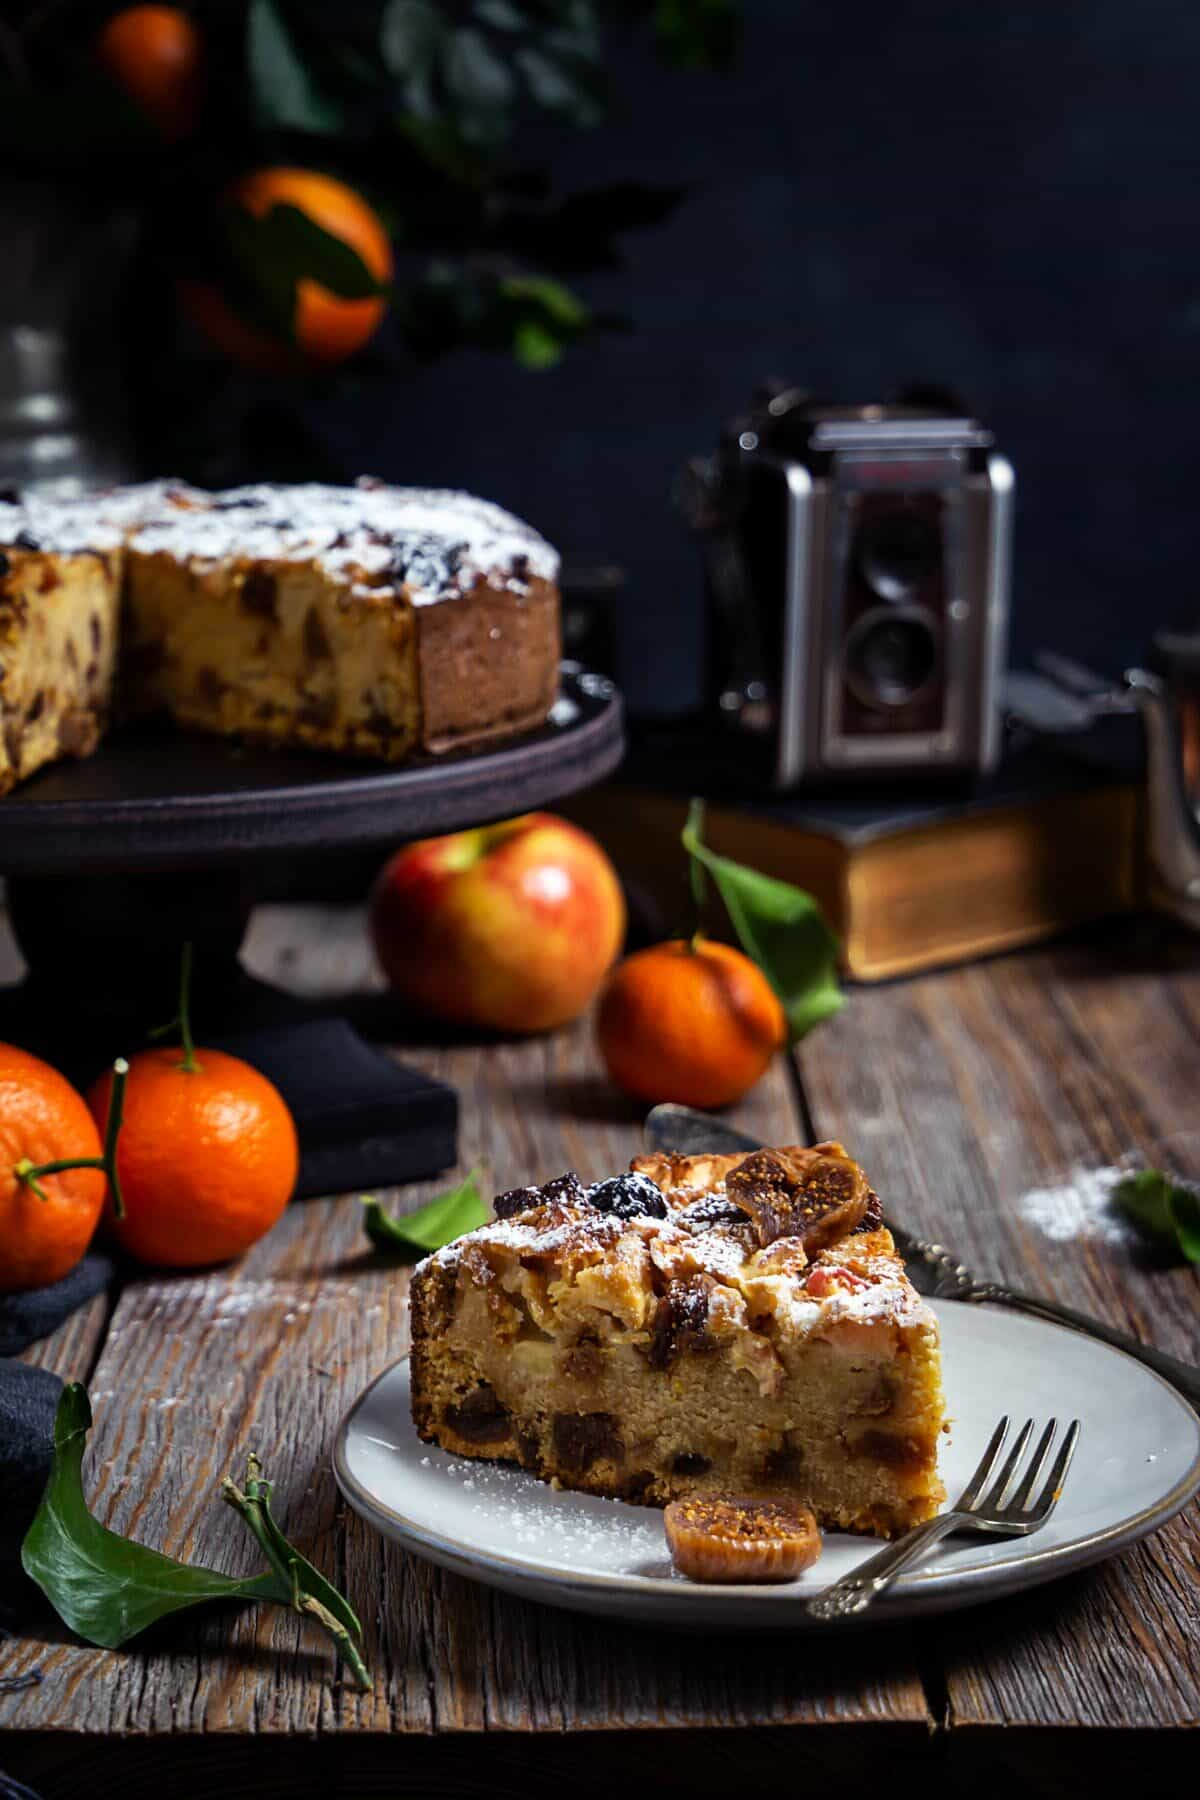 A slice of Italian apple fig polenta cake on a plate with the whole cake and citrus fruit in the background.